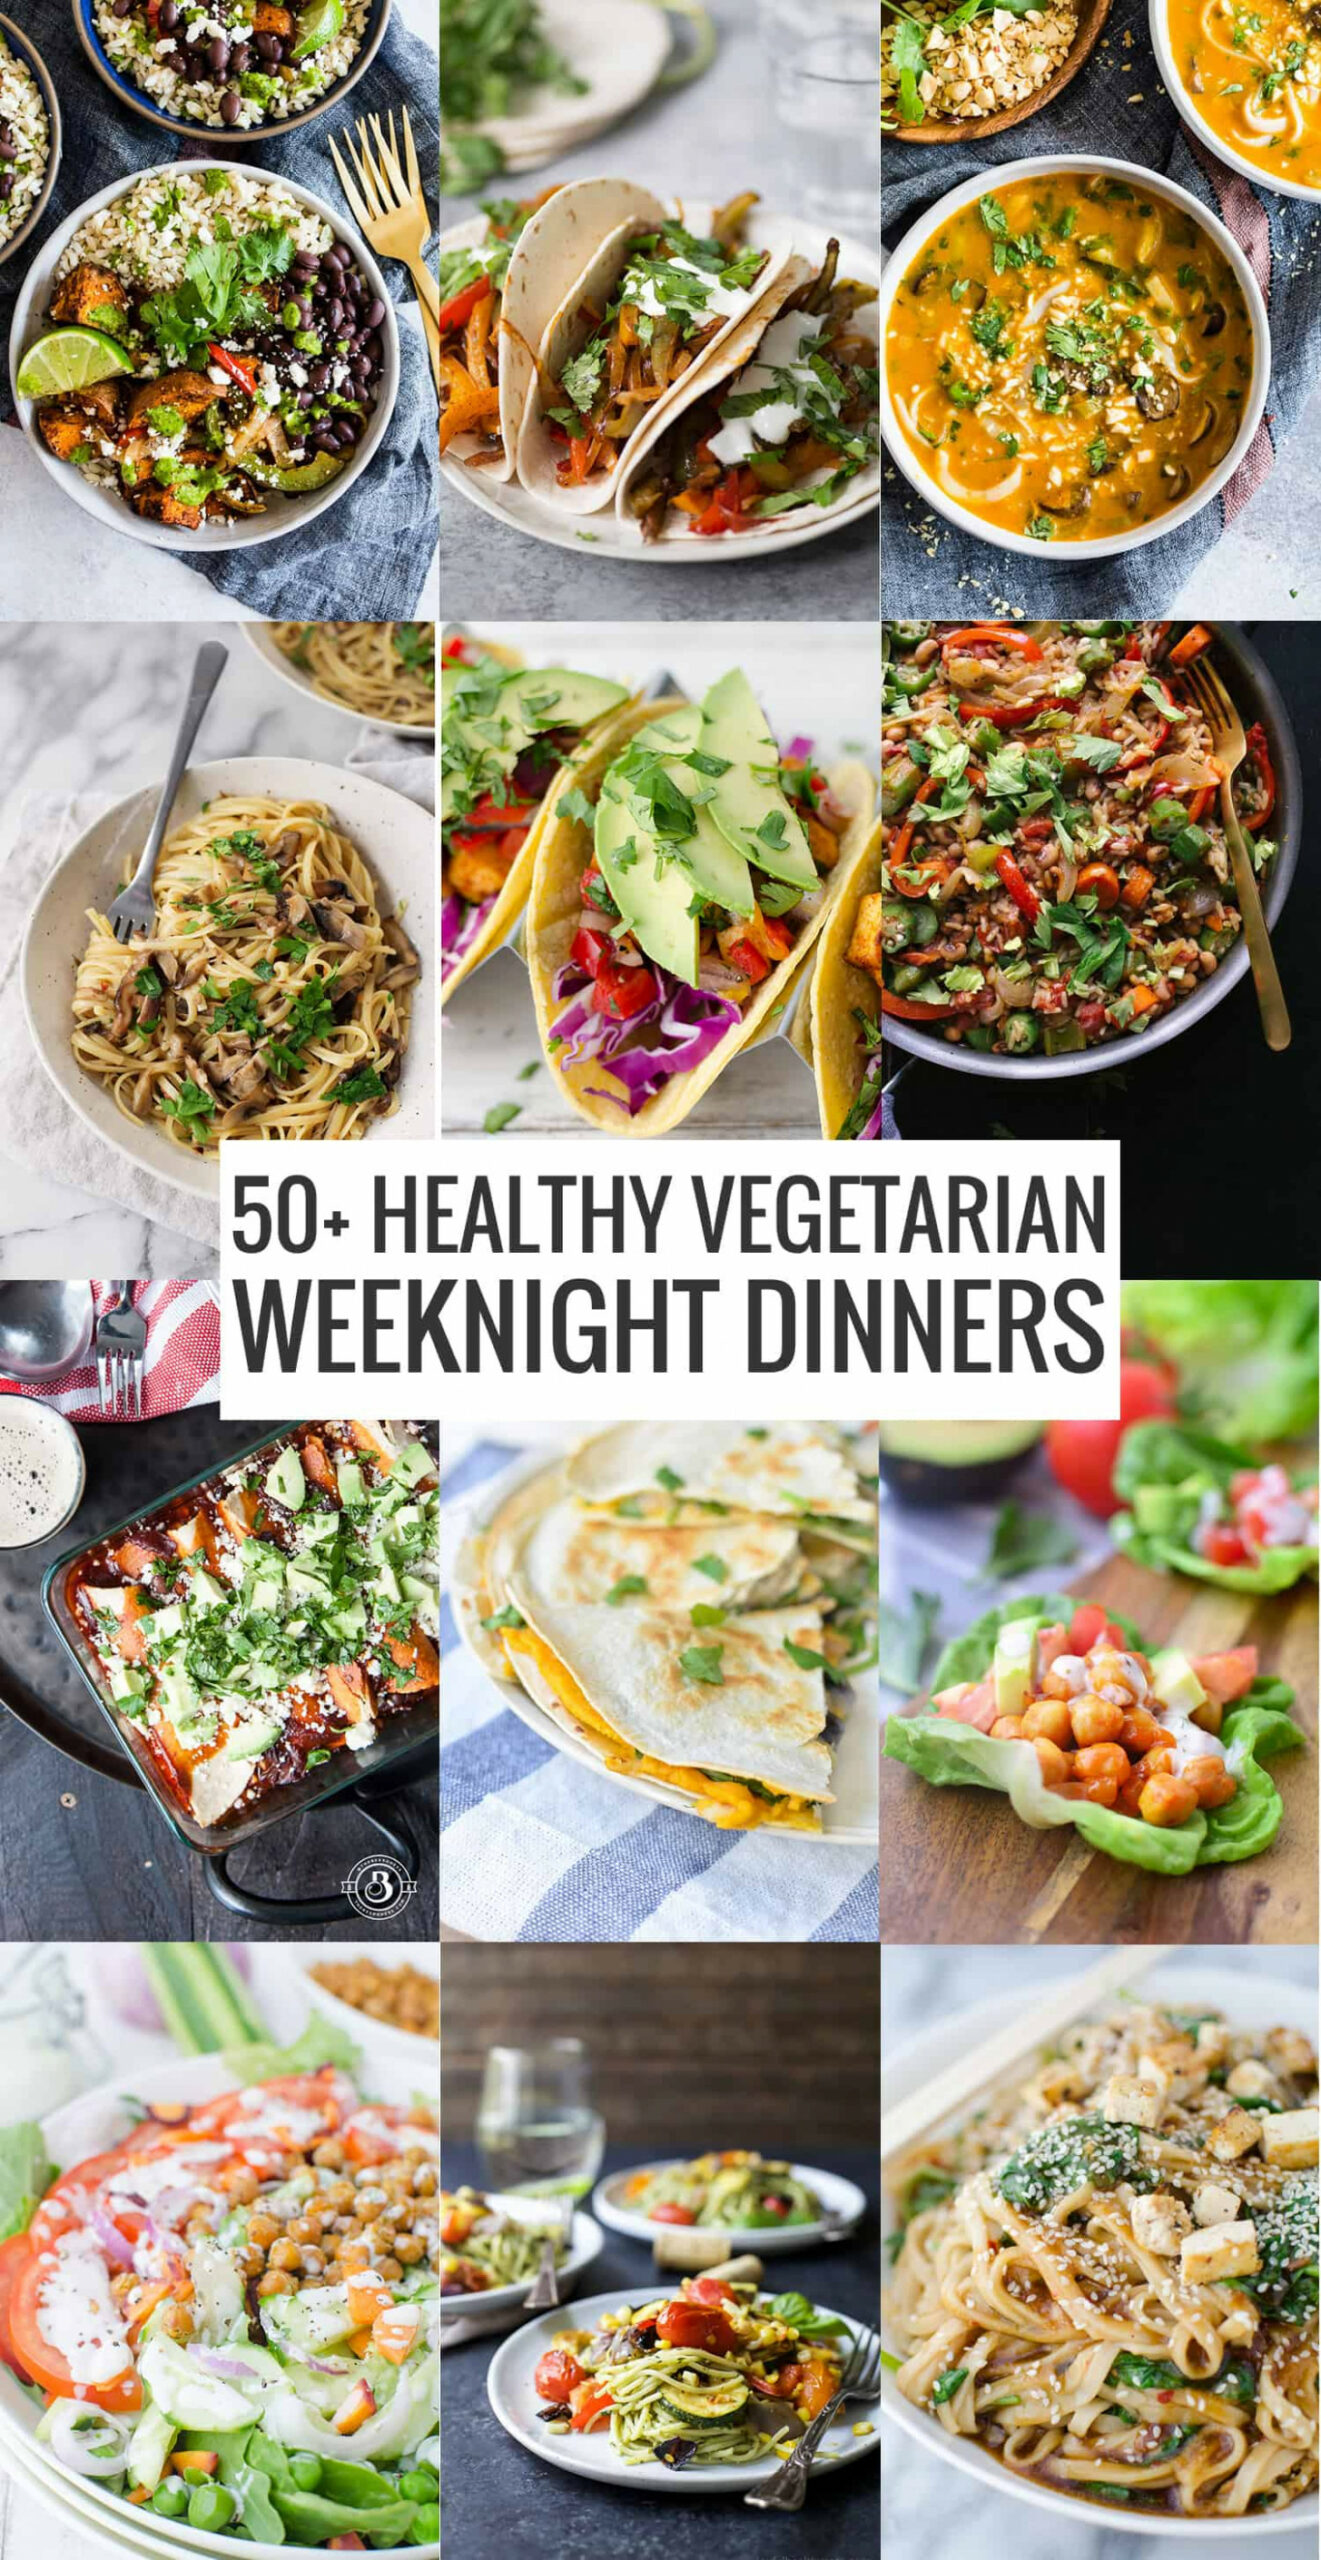 10+ Healthy Vegetarian Meals - Delish Knowledge - dinner recipes quick healthy